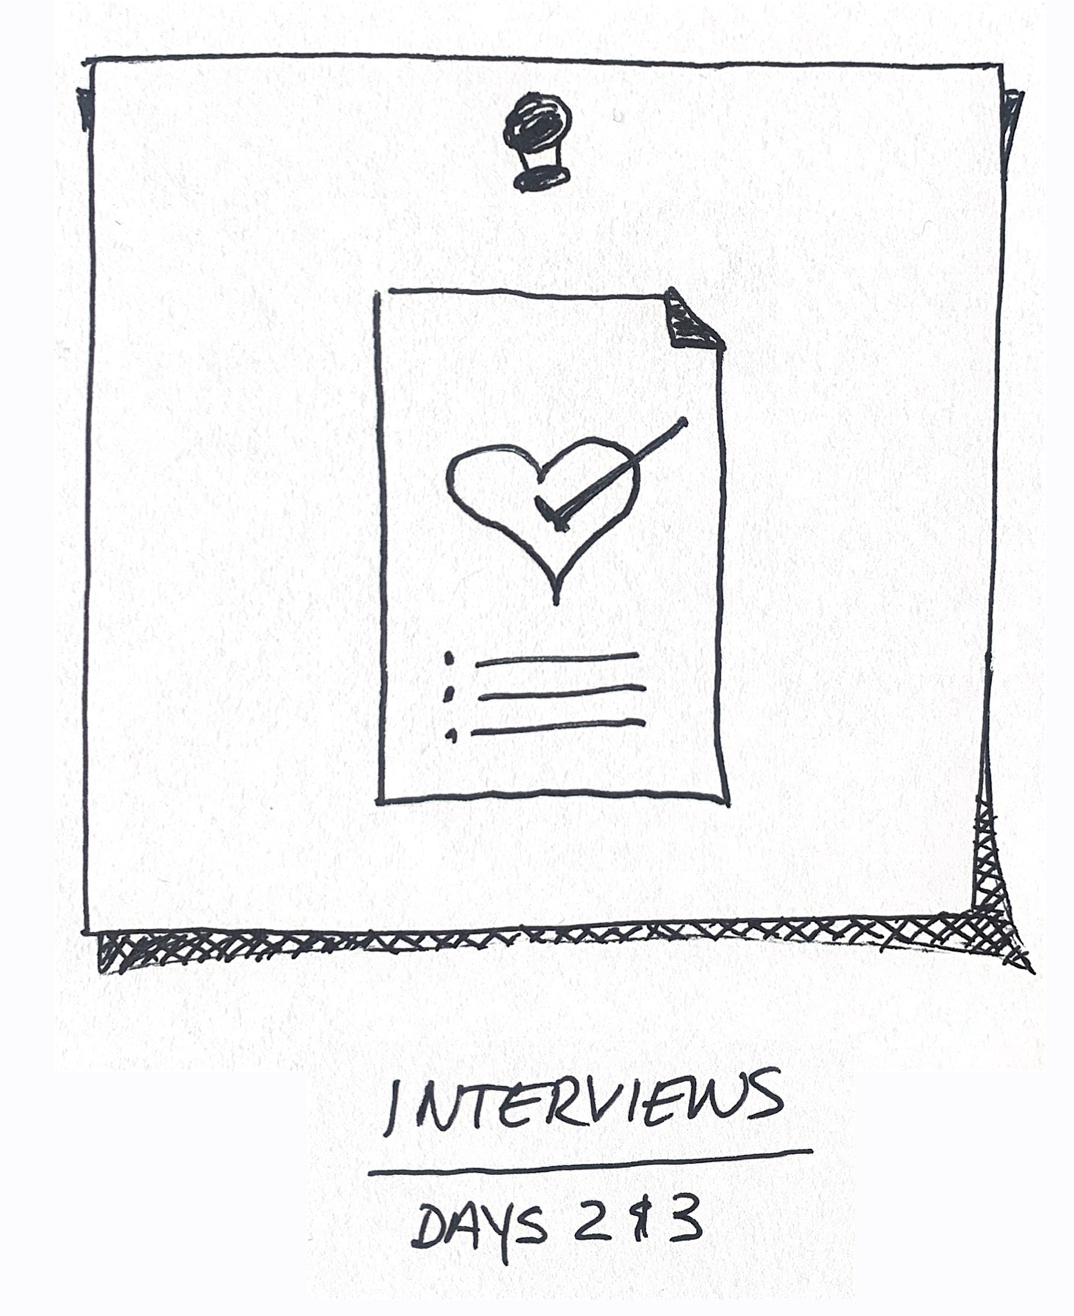 A sketch of a interview icon.